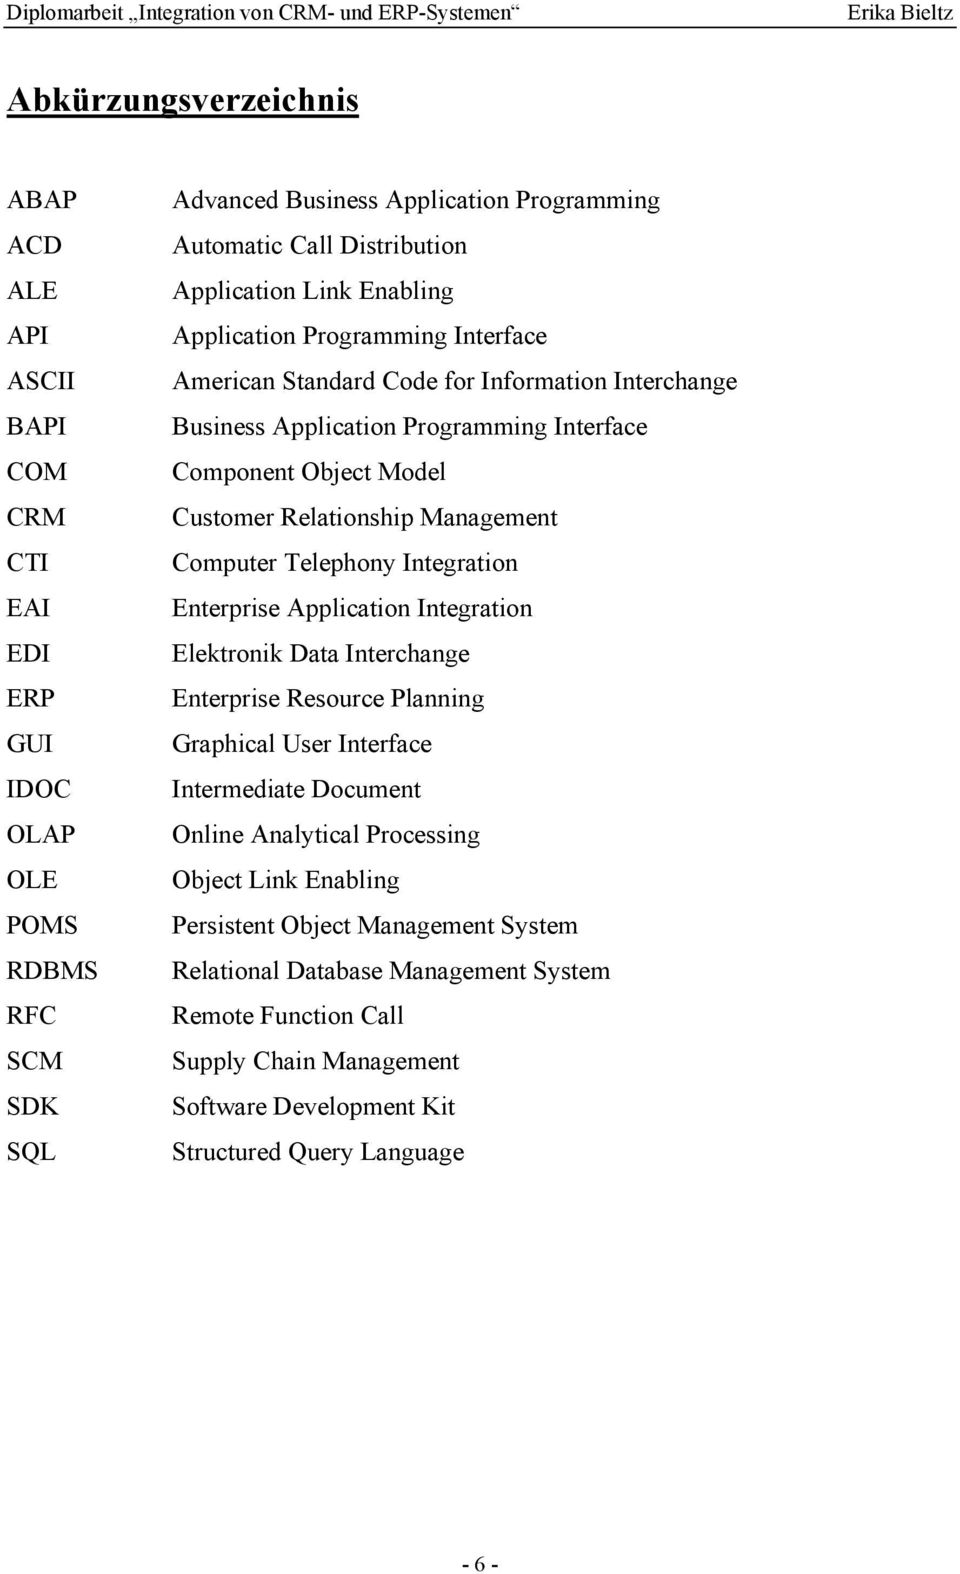 Management Computer Telephony Integration Enterprise Application Integration Elektronik Data Interchange Enterprise Resource Planning Graphical User Interface Intermediate Document Online Analytical